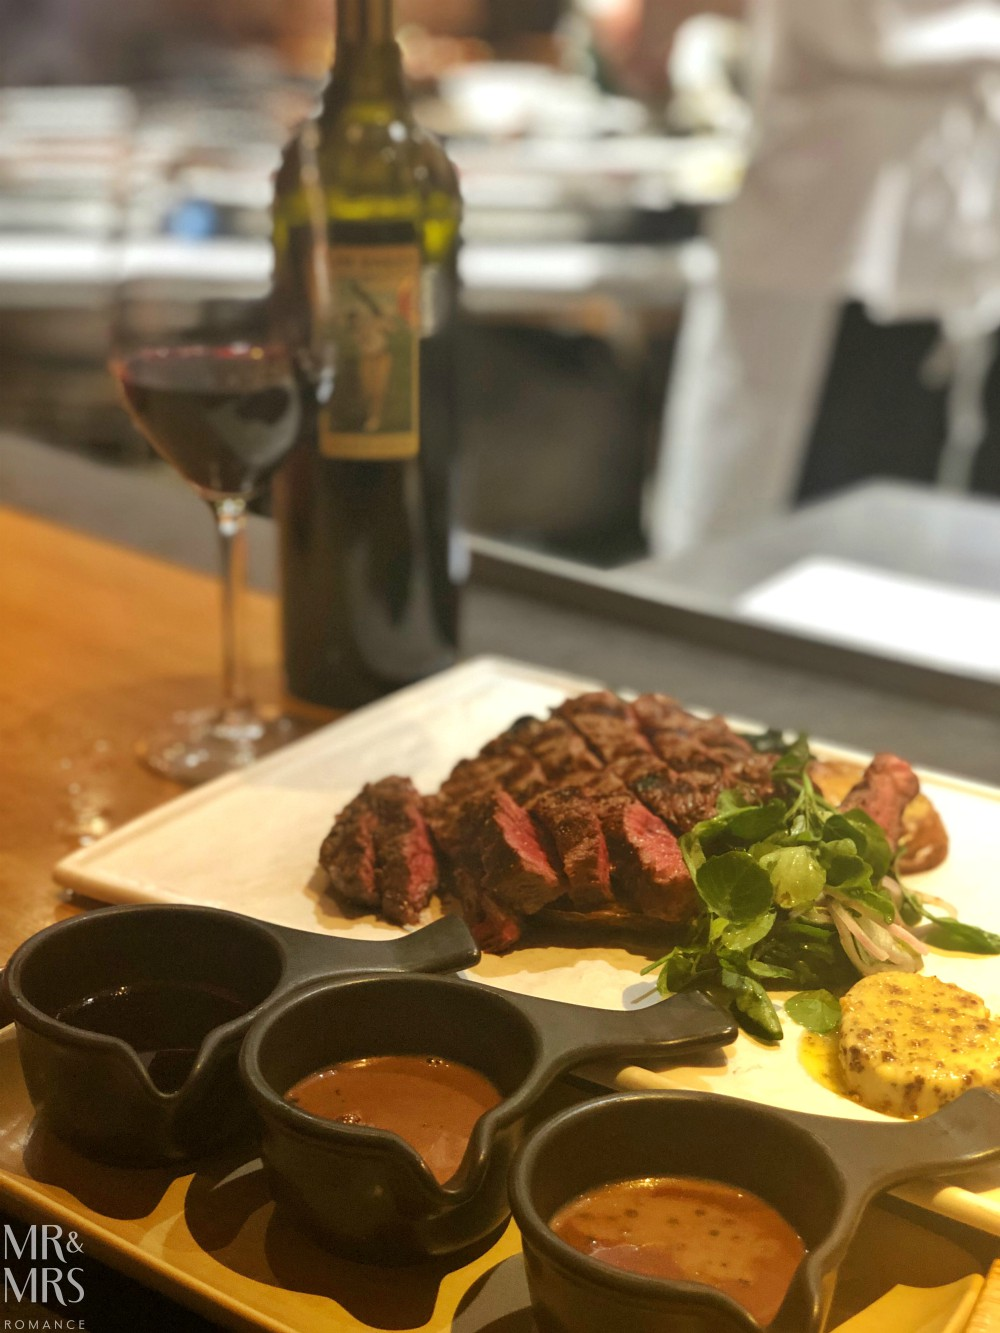 The Ternary Darling Harbour steak